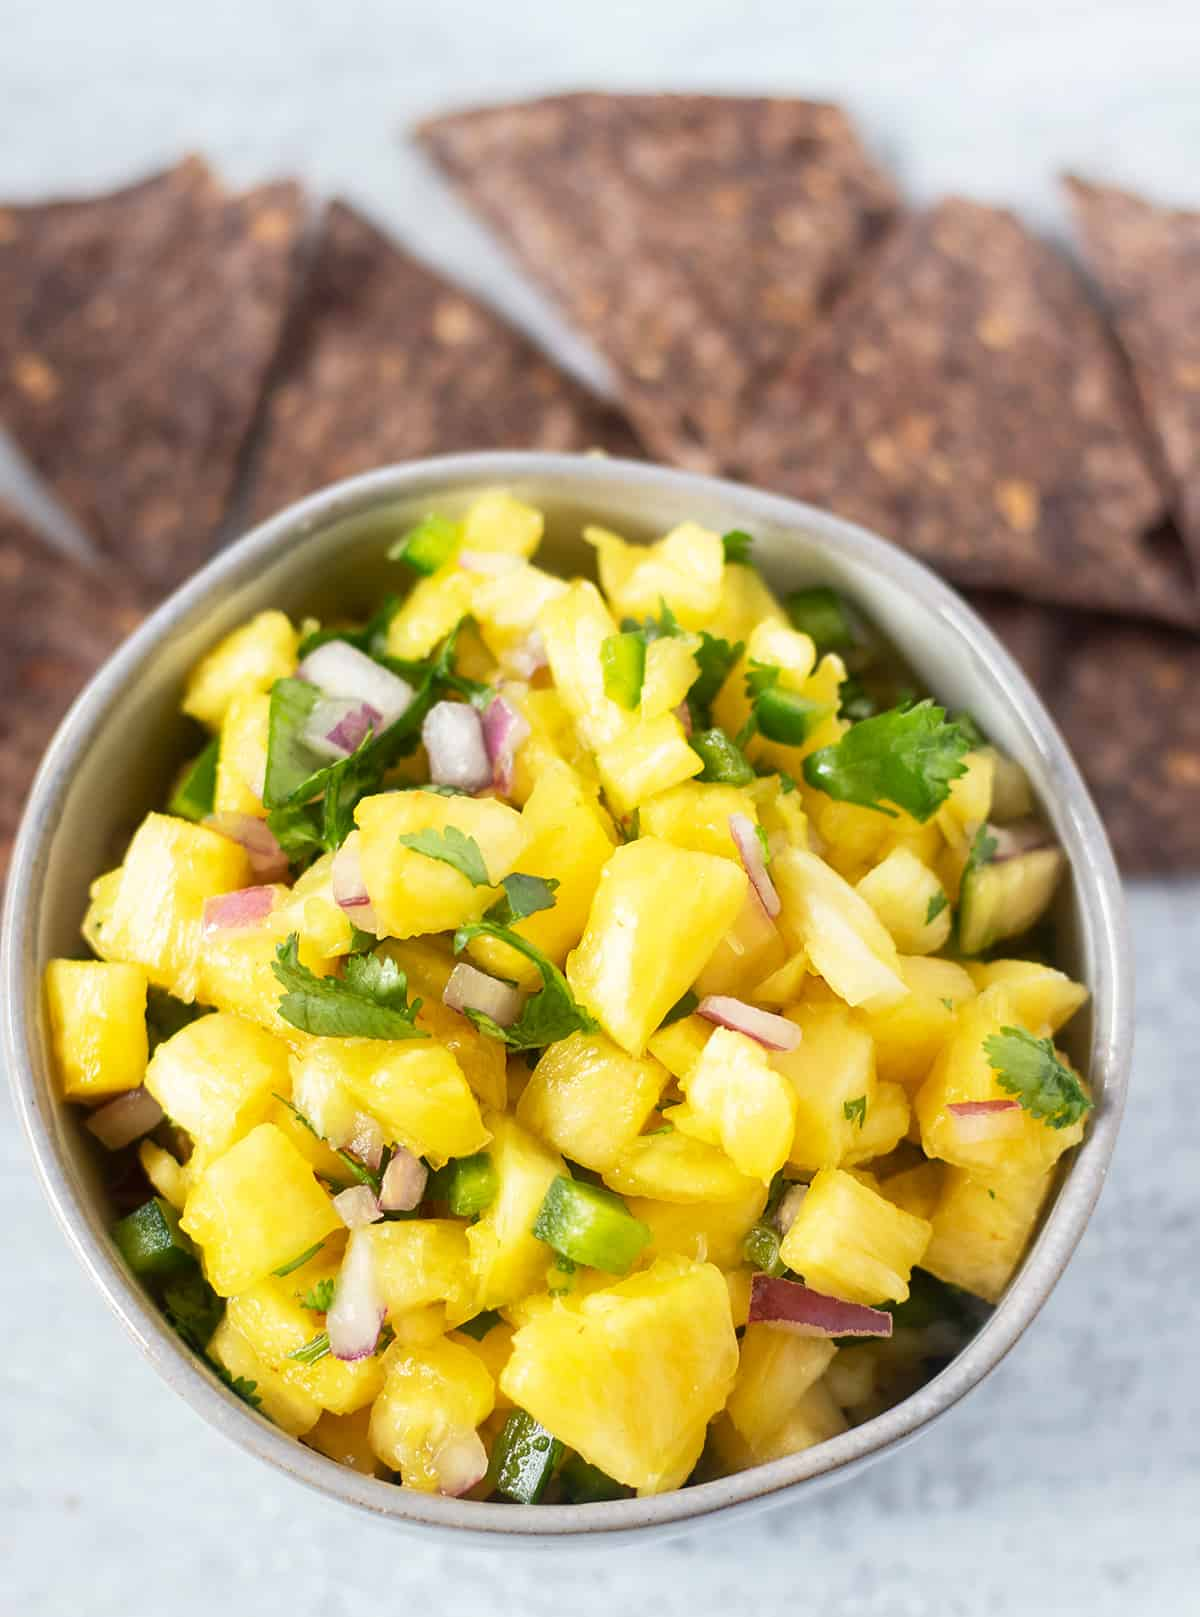 pineapple salsa in a grey bowl with blue tortilla chips beside the bowl for serving.